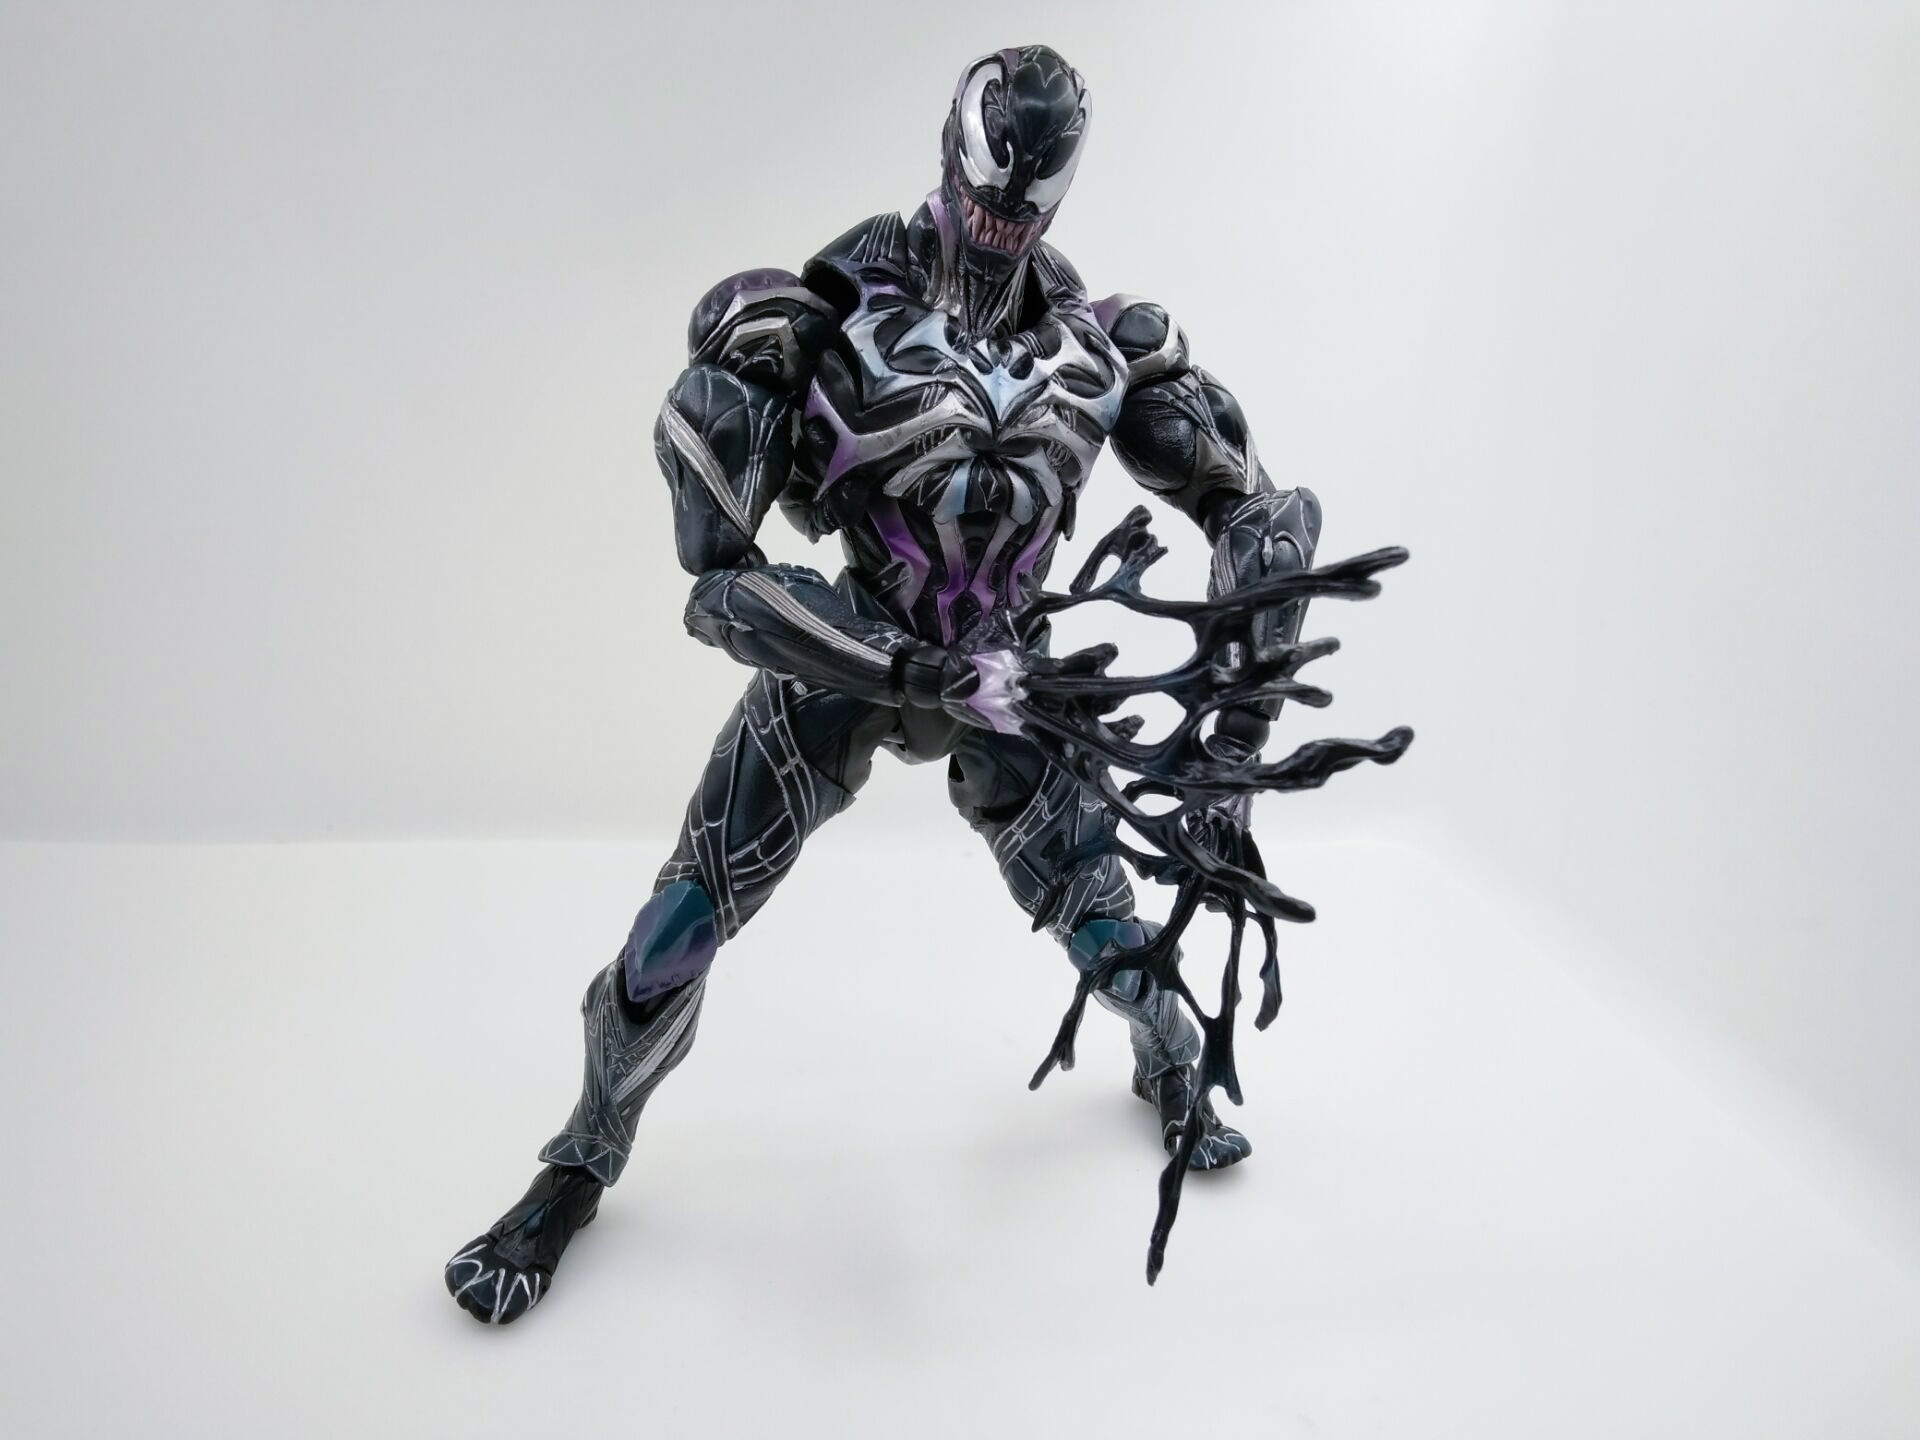 WVW 27CM Hot Sale Q Version Movie Hero Spider Man Venom Play Arts Model PVC Toy Action Figure Decoration For Collection Gift japan warring states warriors q version of the war era of japanese samurai toy model decoration collection 7pcs set